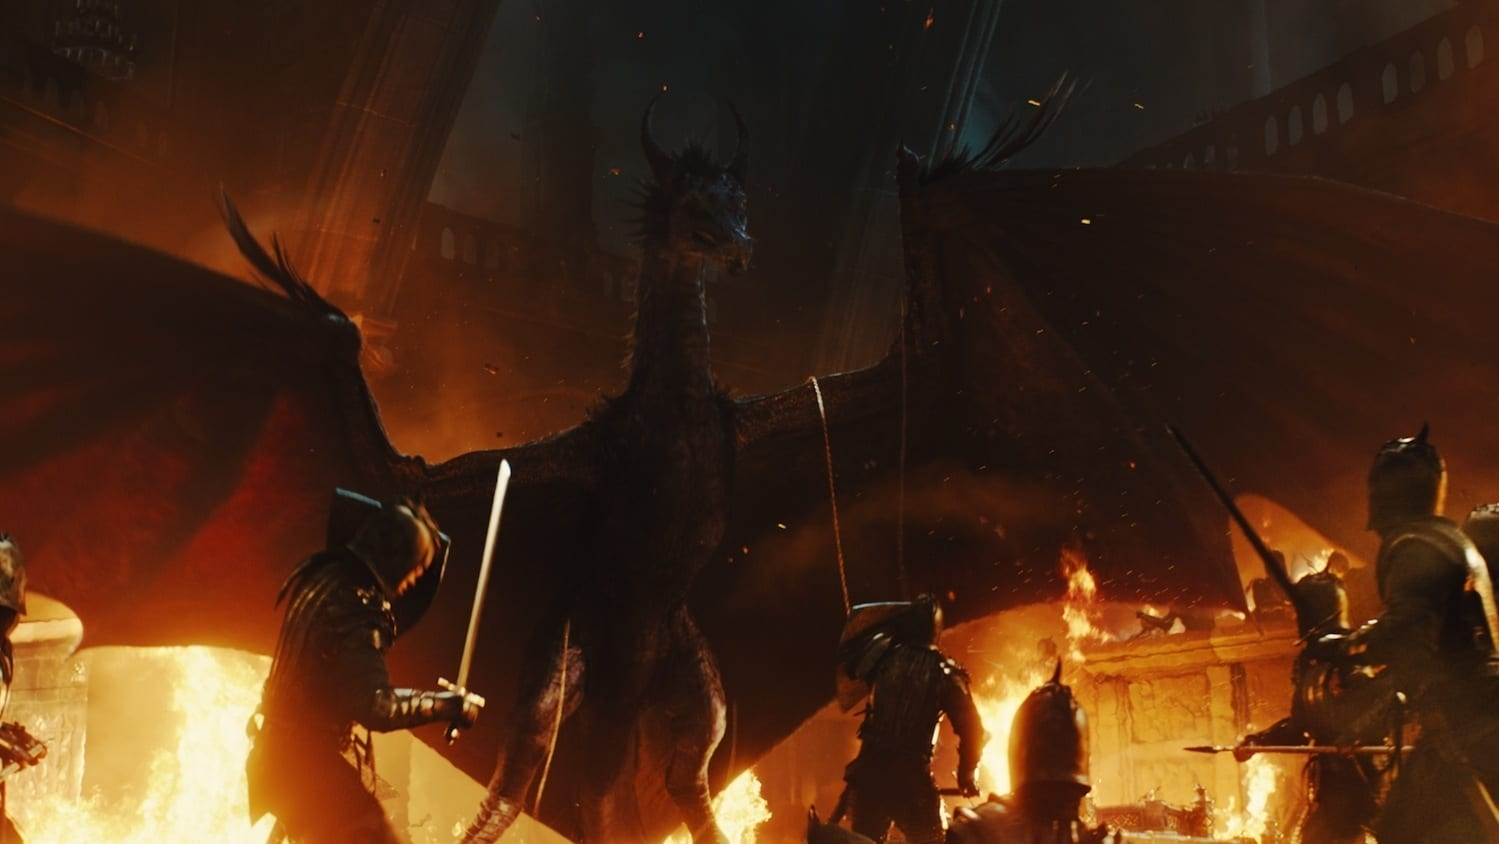 """Maleficent as a dragon, surrounded by soldiers and fire, in the movie """"Maleficent"""""""